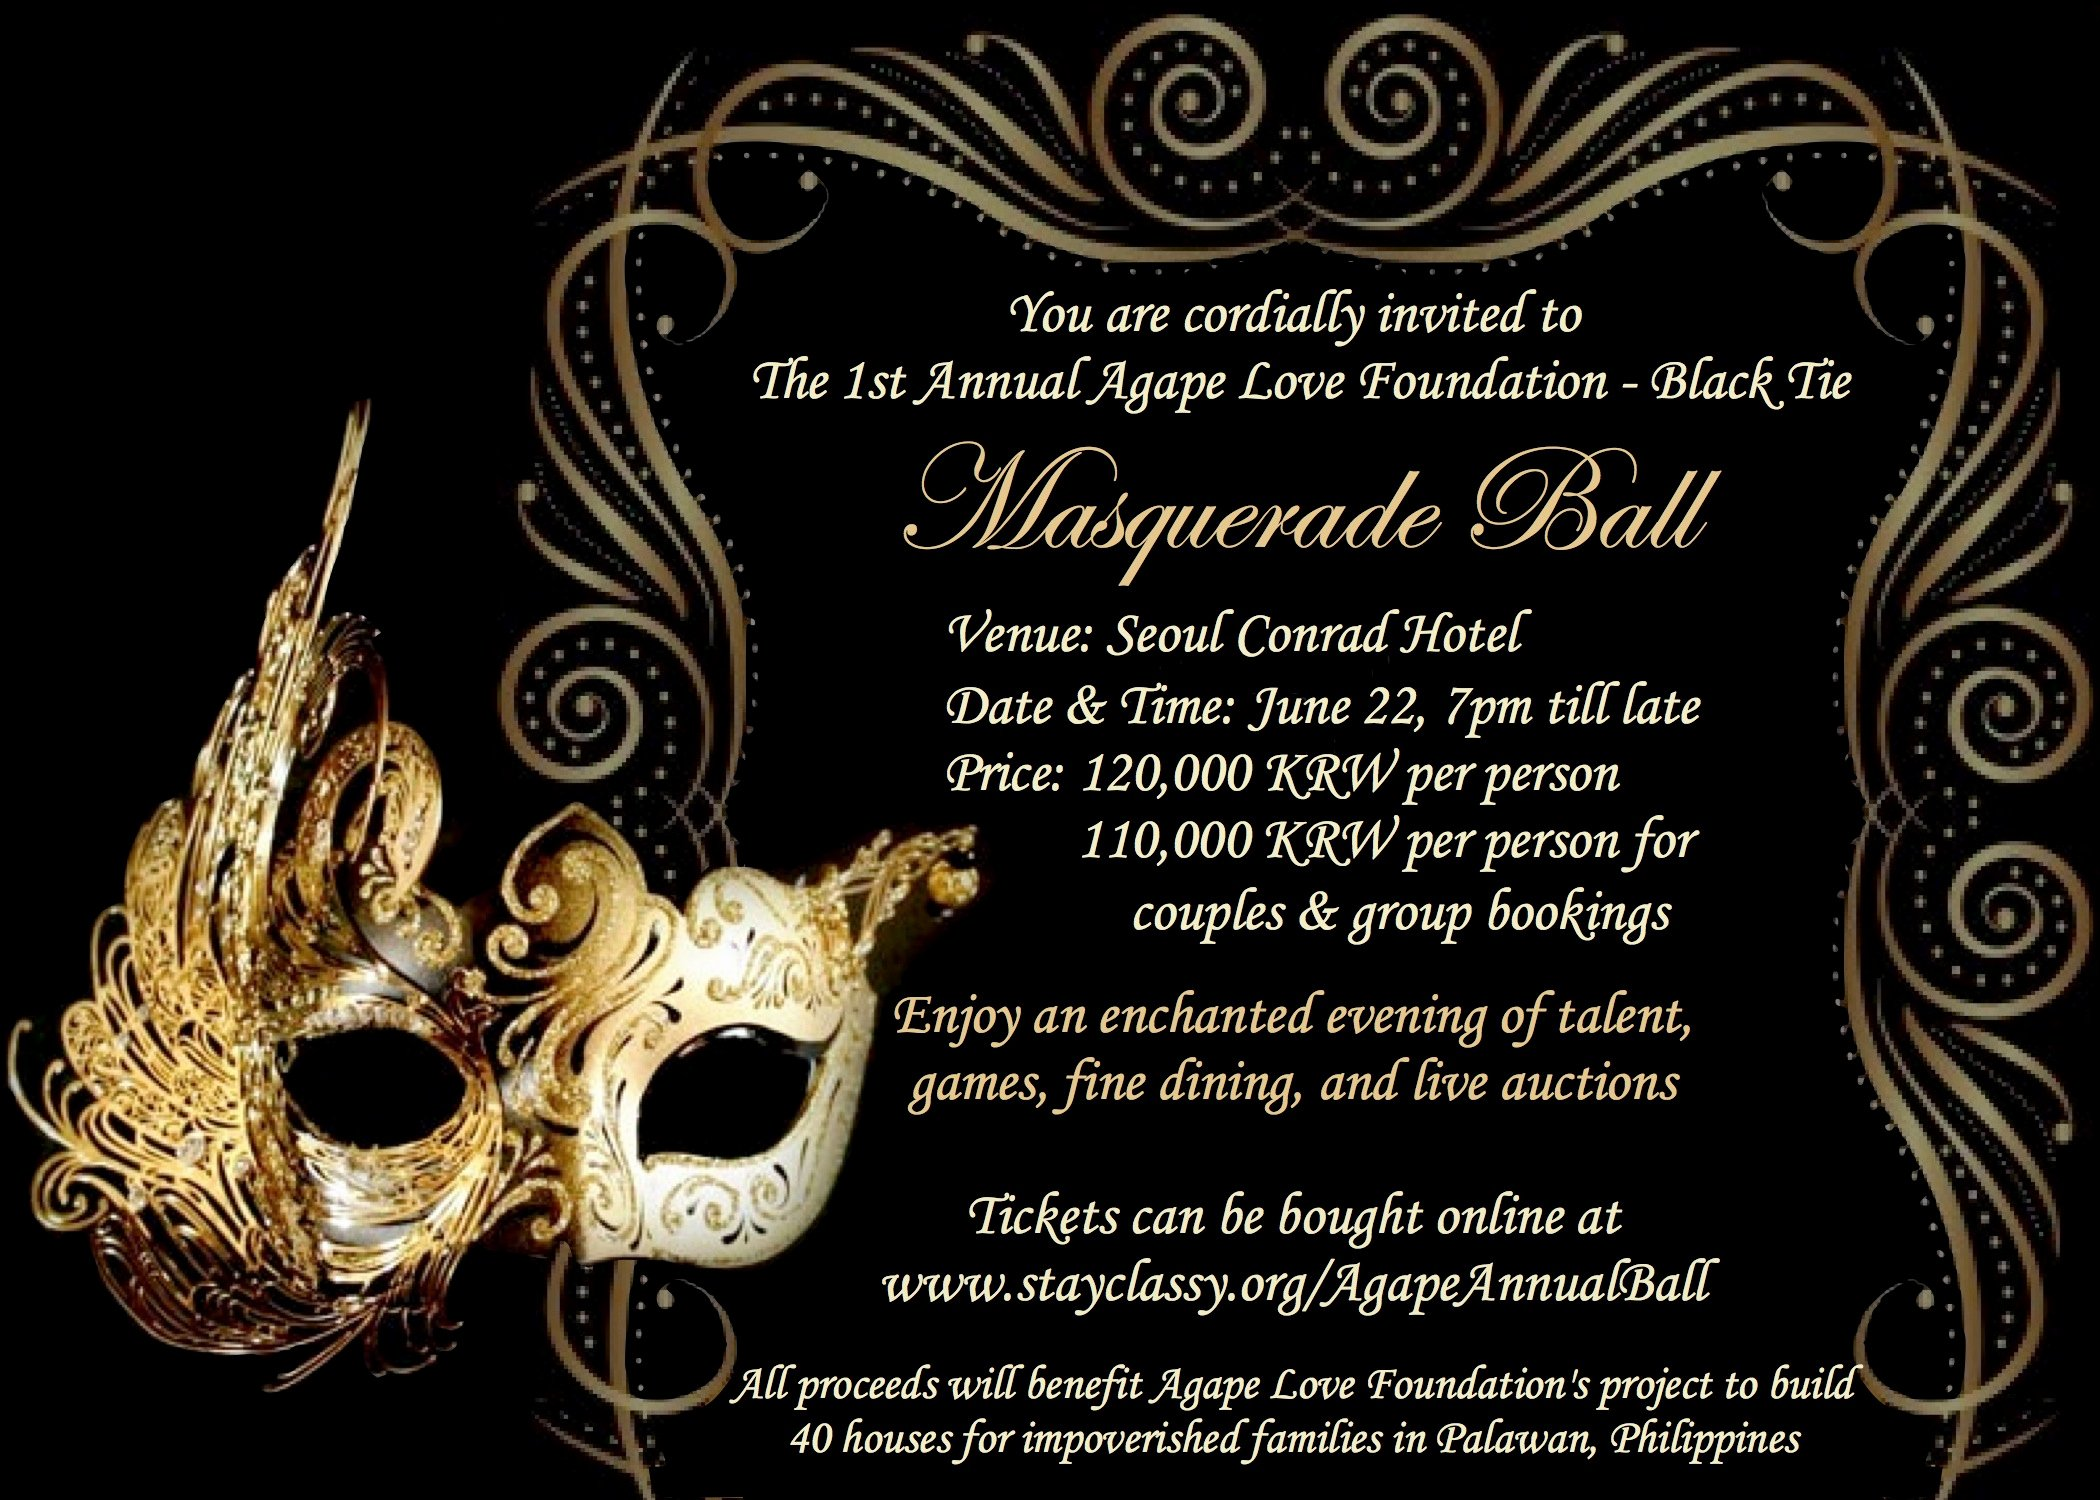 Masquerade Invitations Templates Free Beautiful Birthday Party Invitations Free Templates Free Invitation Templates Drevio